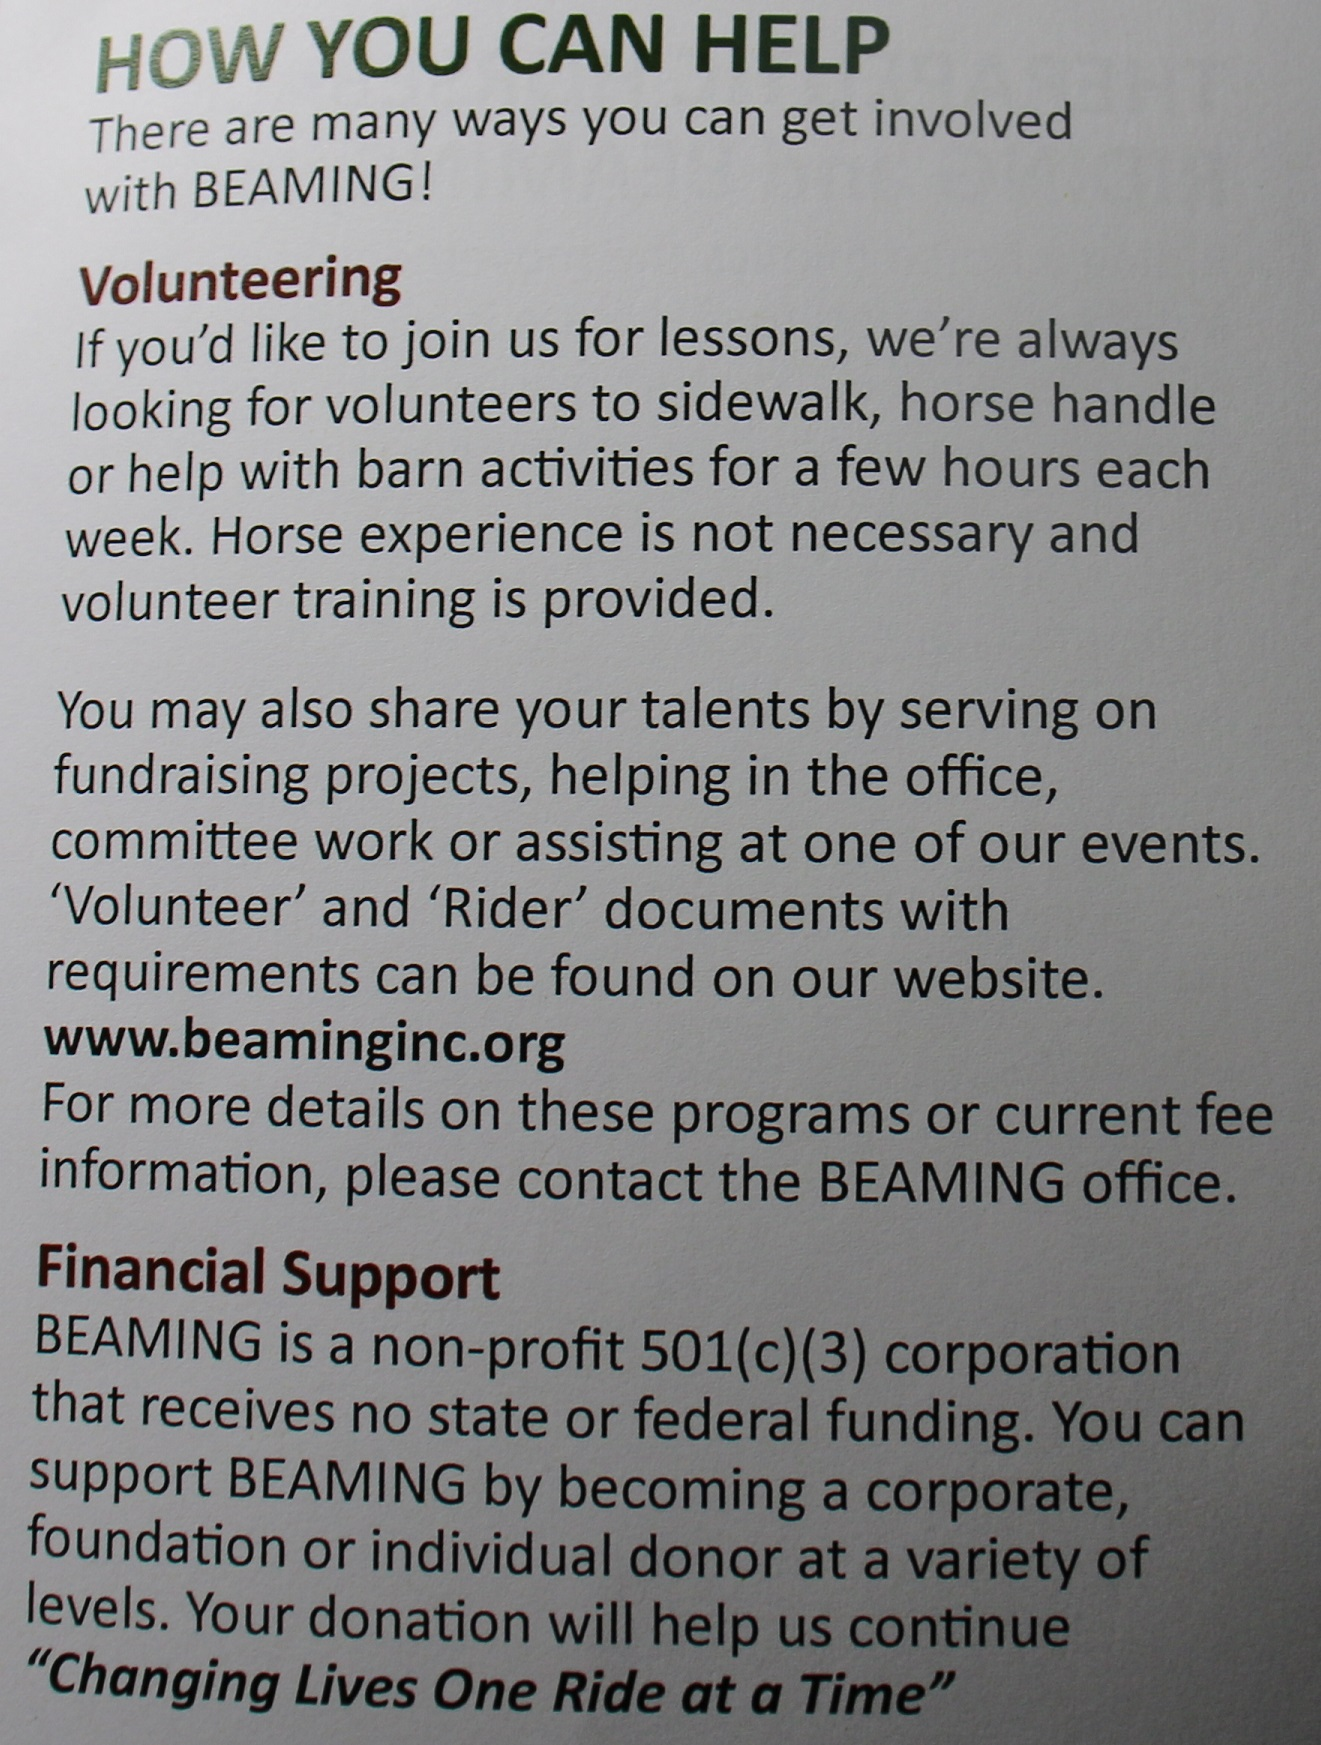 How you can help at Beaming